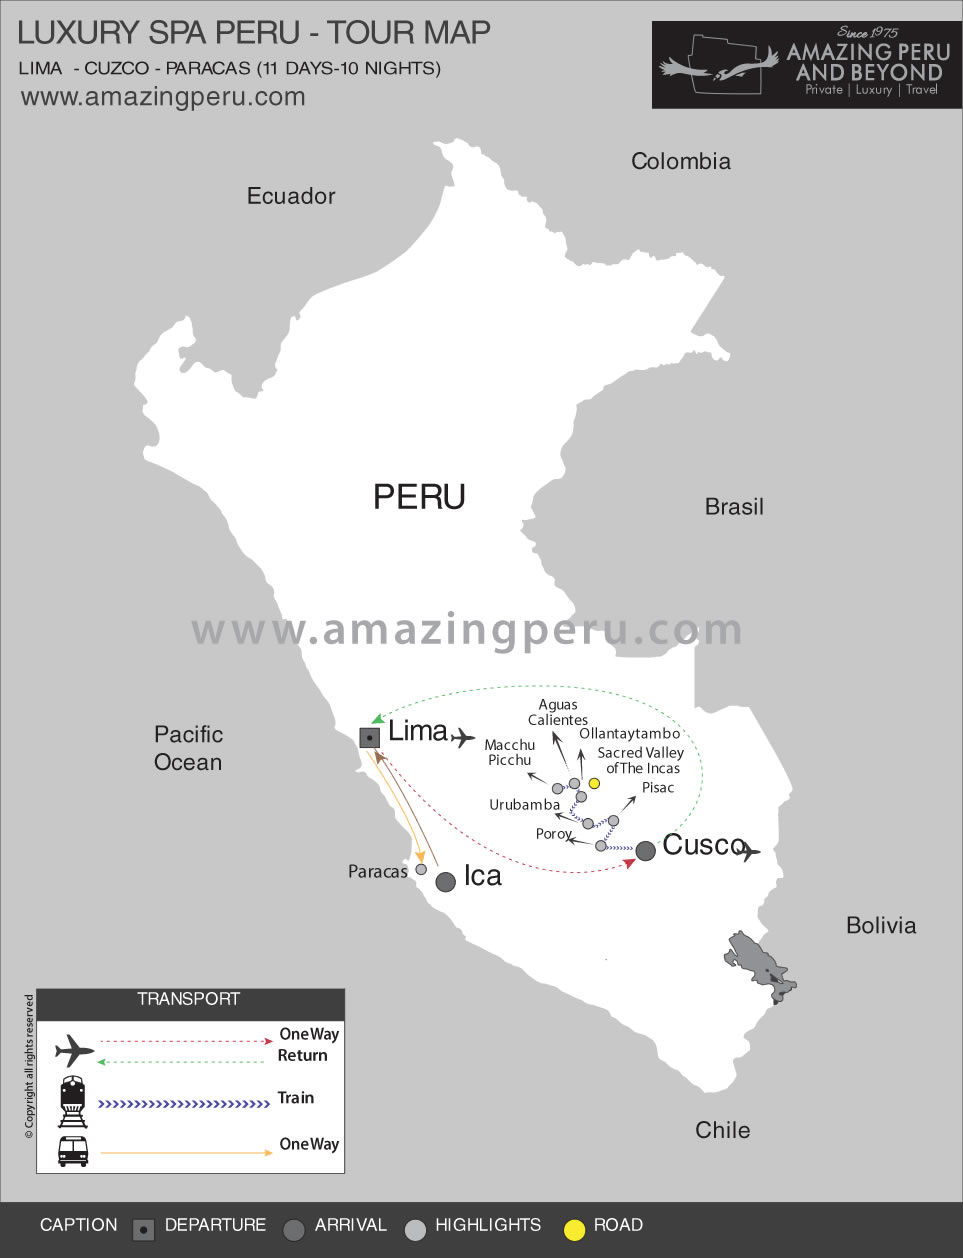 Luxury Spa Tour Peru - 11 days / 10 nights.